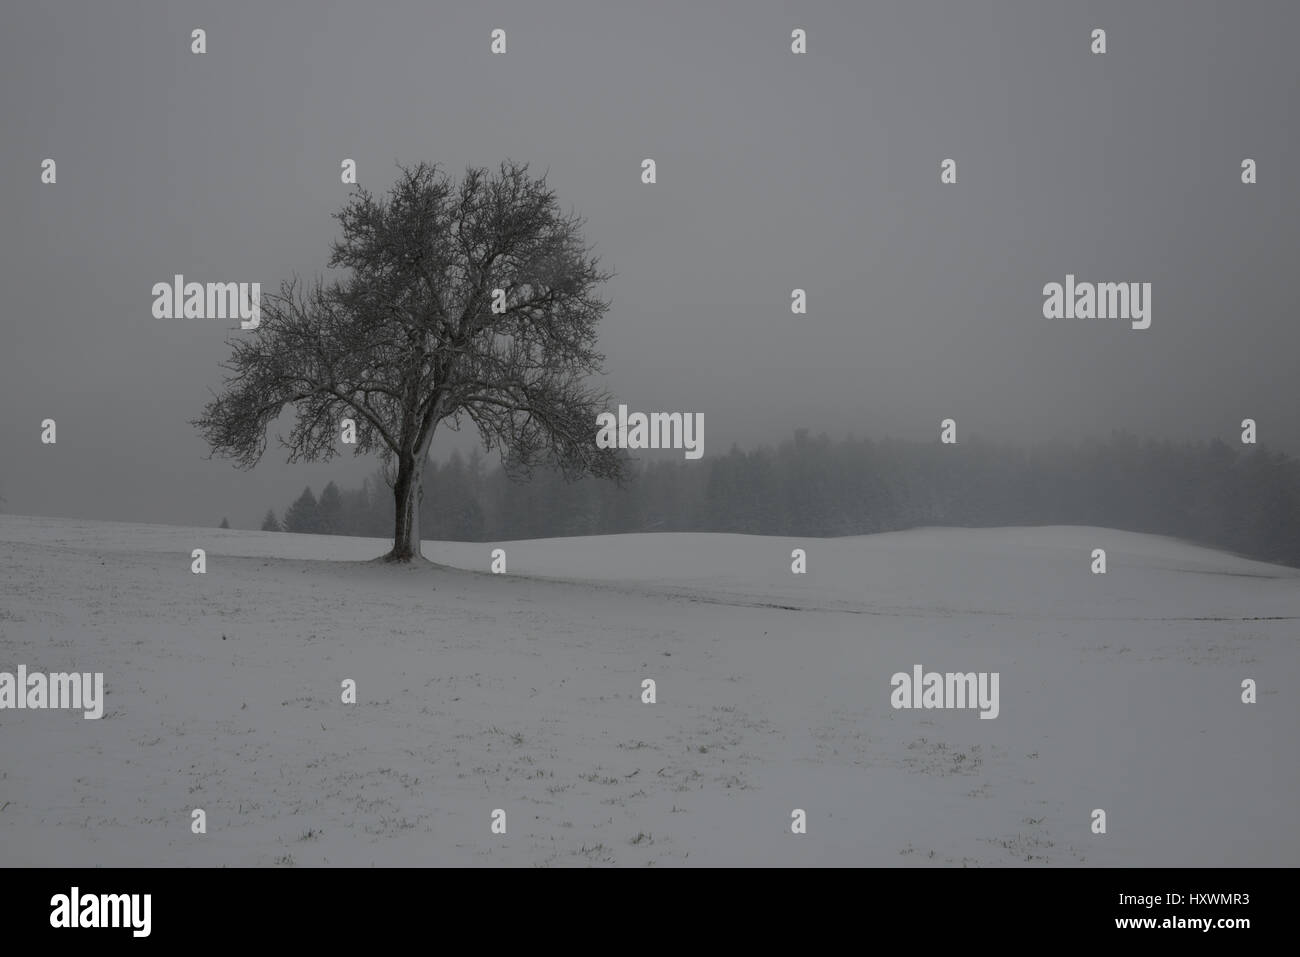 solitary fruit tree covered in snow on meadow with forest in background - Stock Image